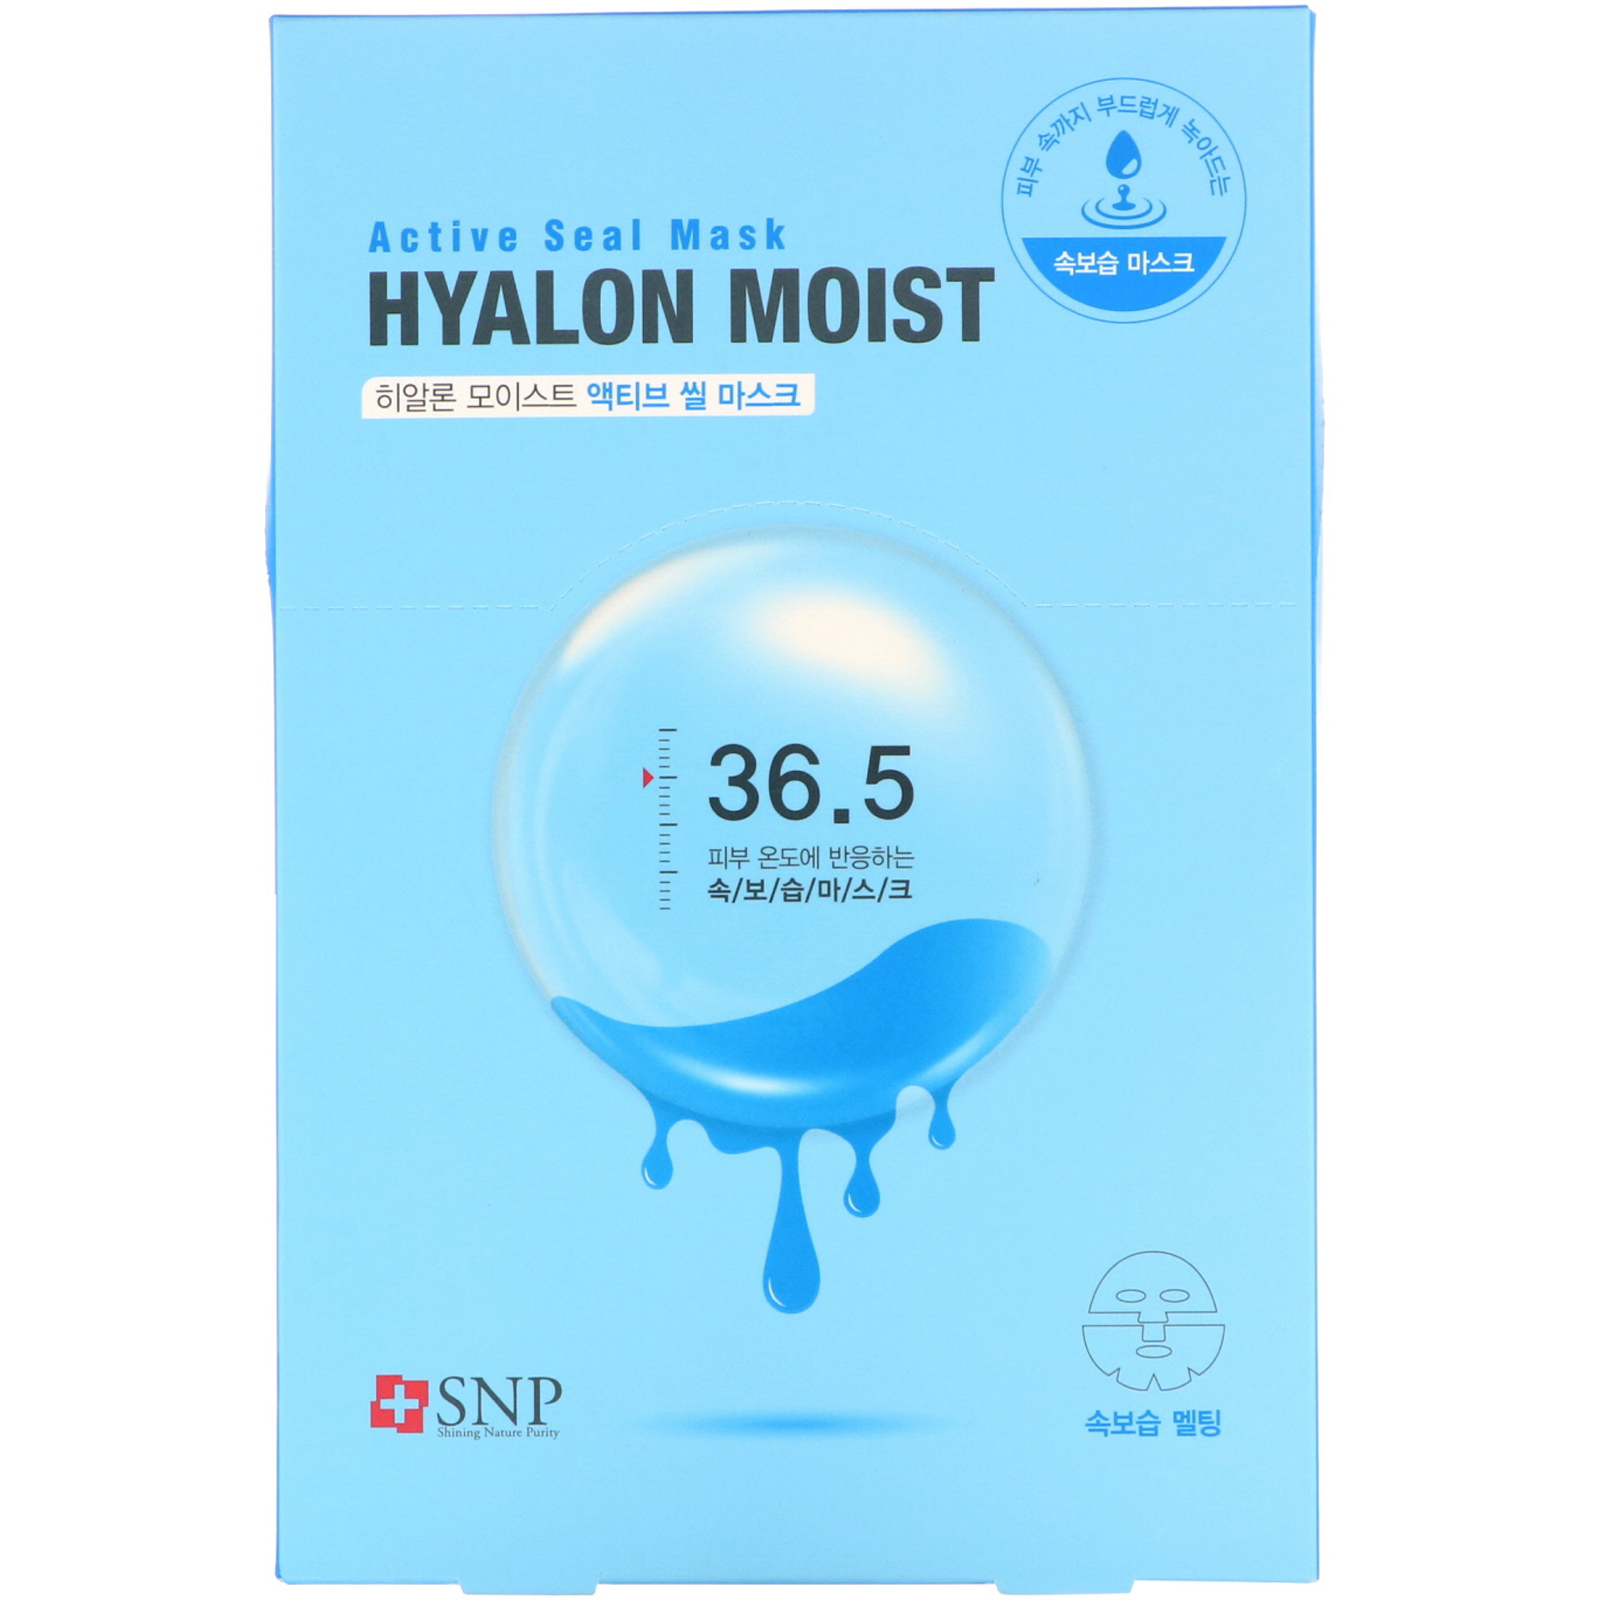 SNP, Hyalon Moist, Active Seal Mask, 5 Sheets, 1.11 fl oz (33 ml) Each